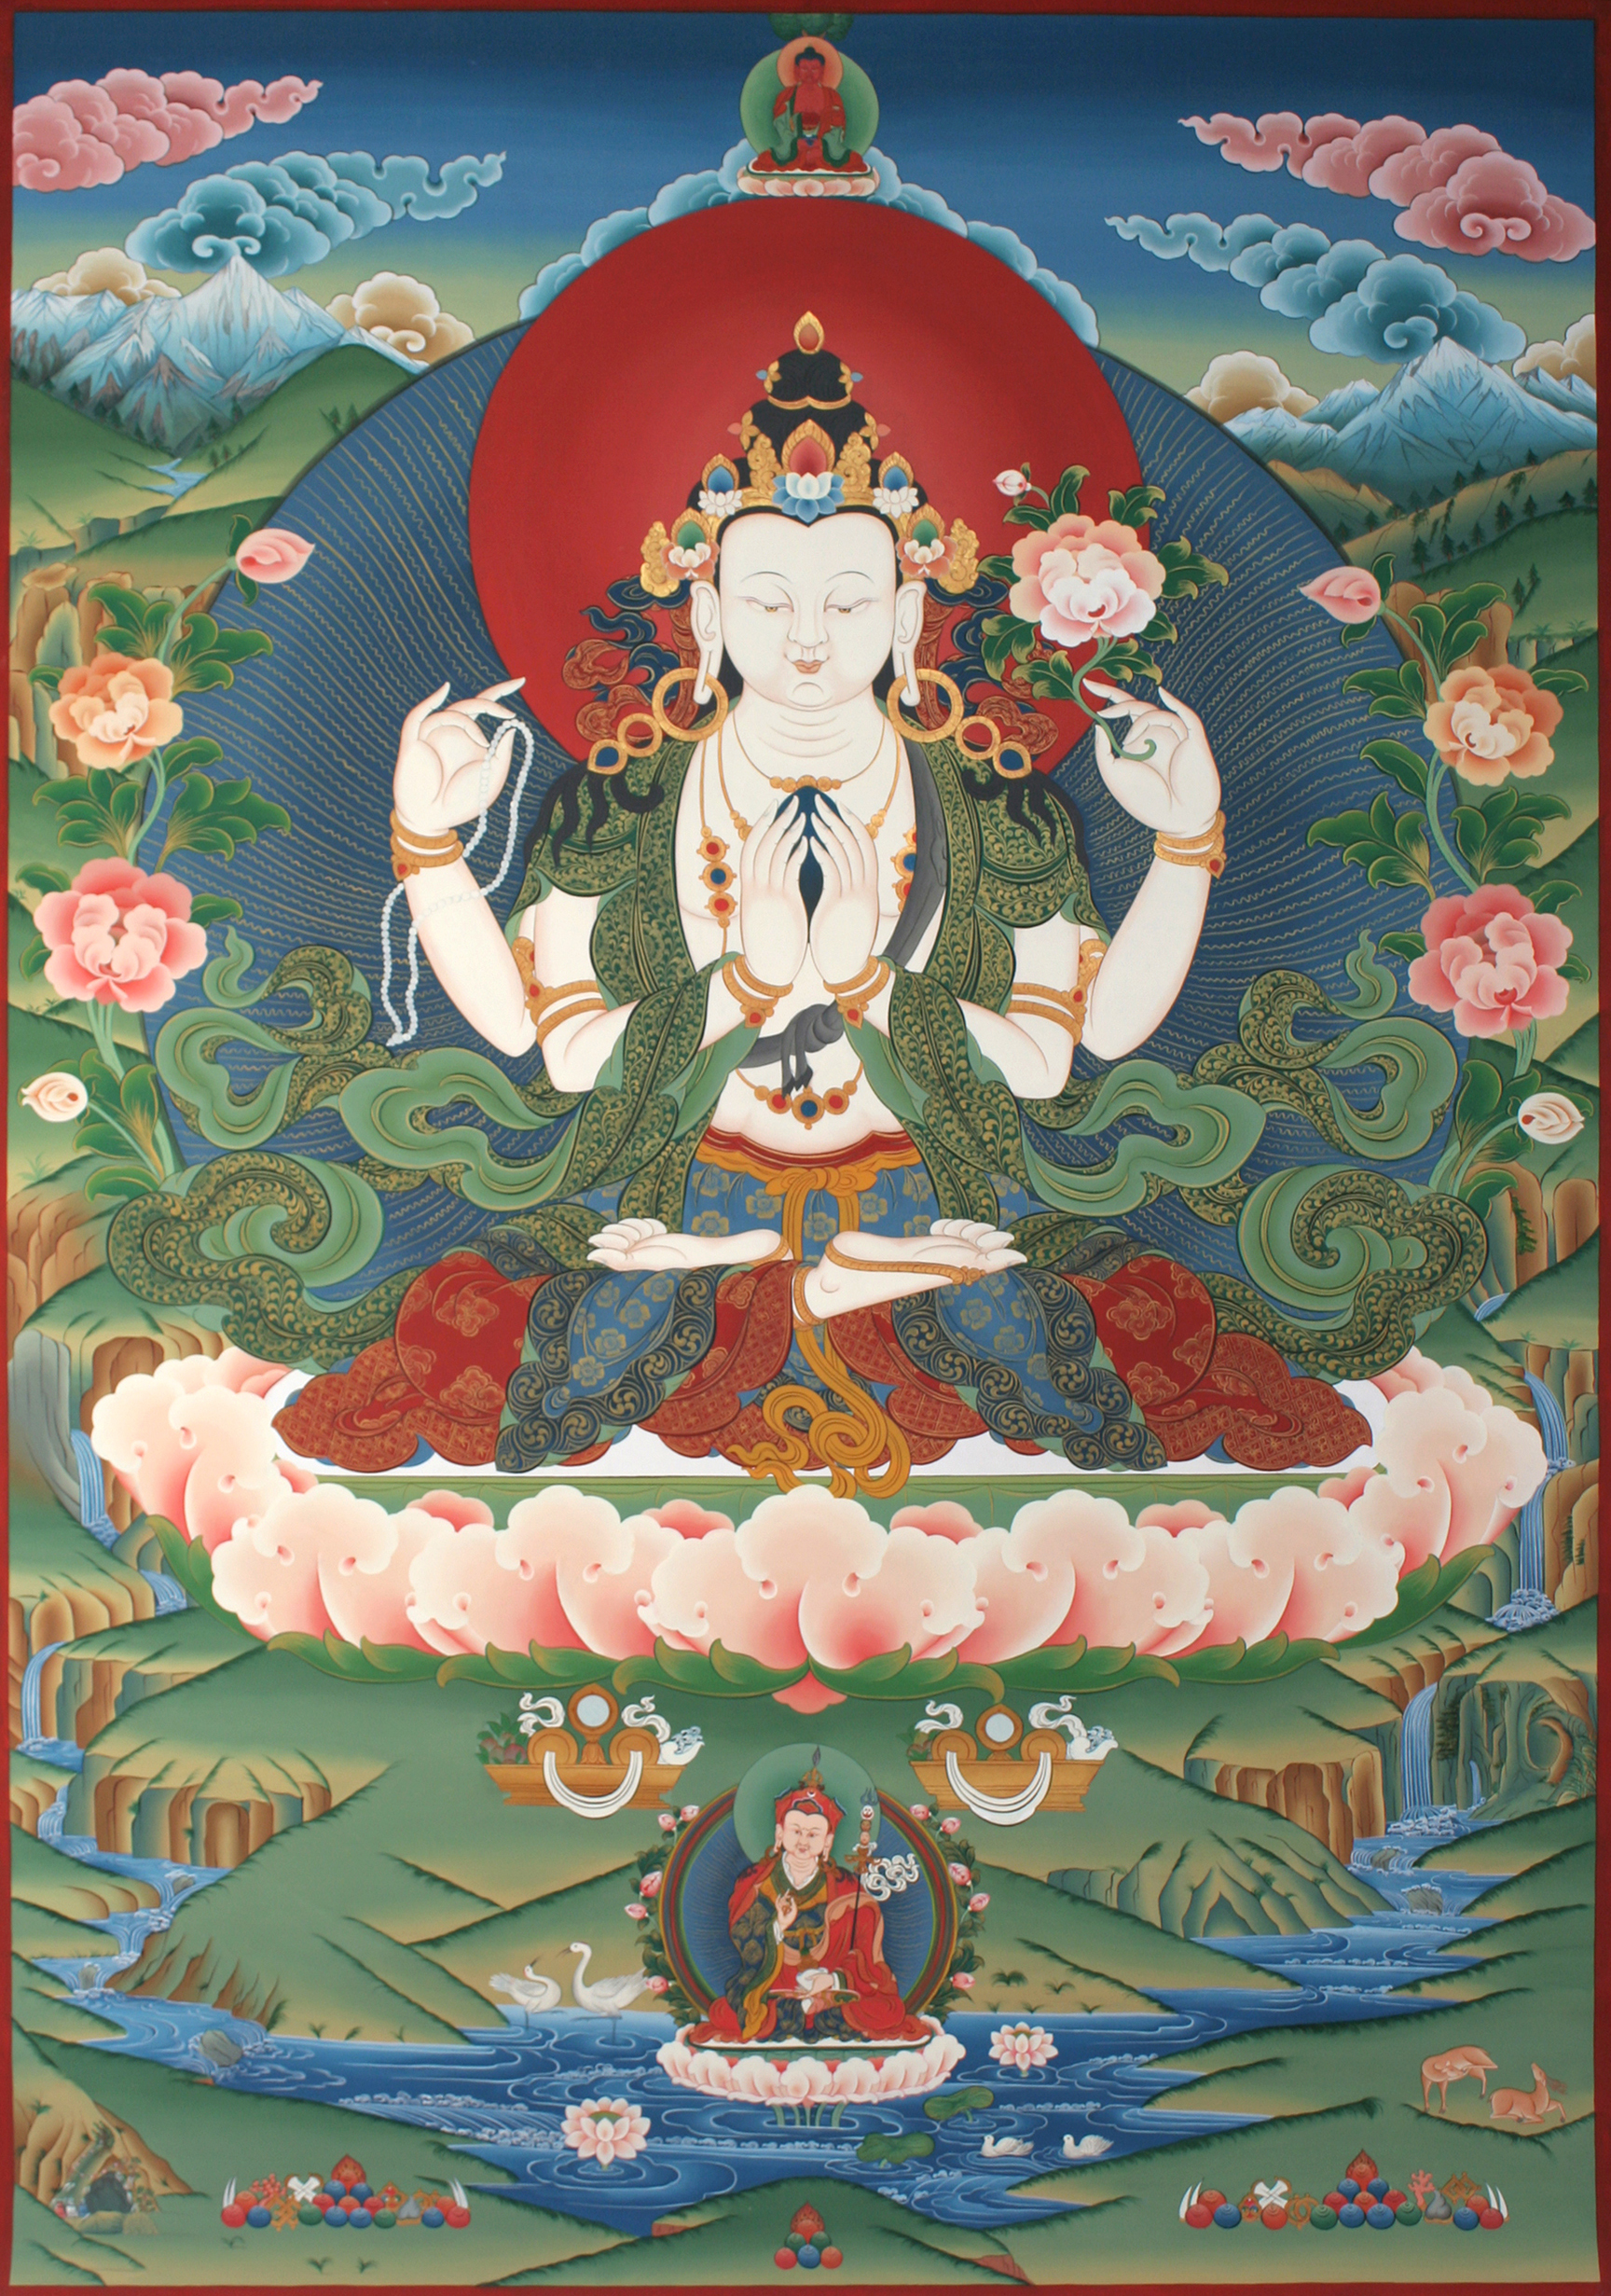 The four-arm Chenrezig, or Avalokiteshvara, is the largest Thangka painting in Mustang, measuring 10 by 5.5 feet. The painting is widely admired for its narrative complexity, beauty of execution, and detailed drawing. Tempera on canvas, Mustang, Nepal, 2010.